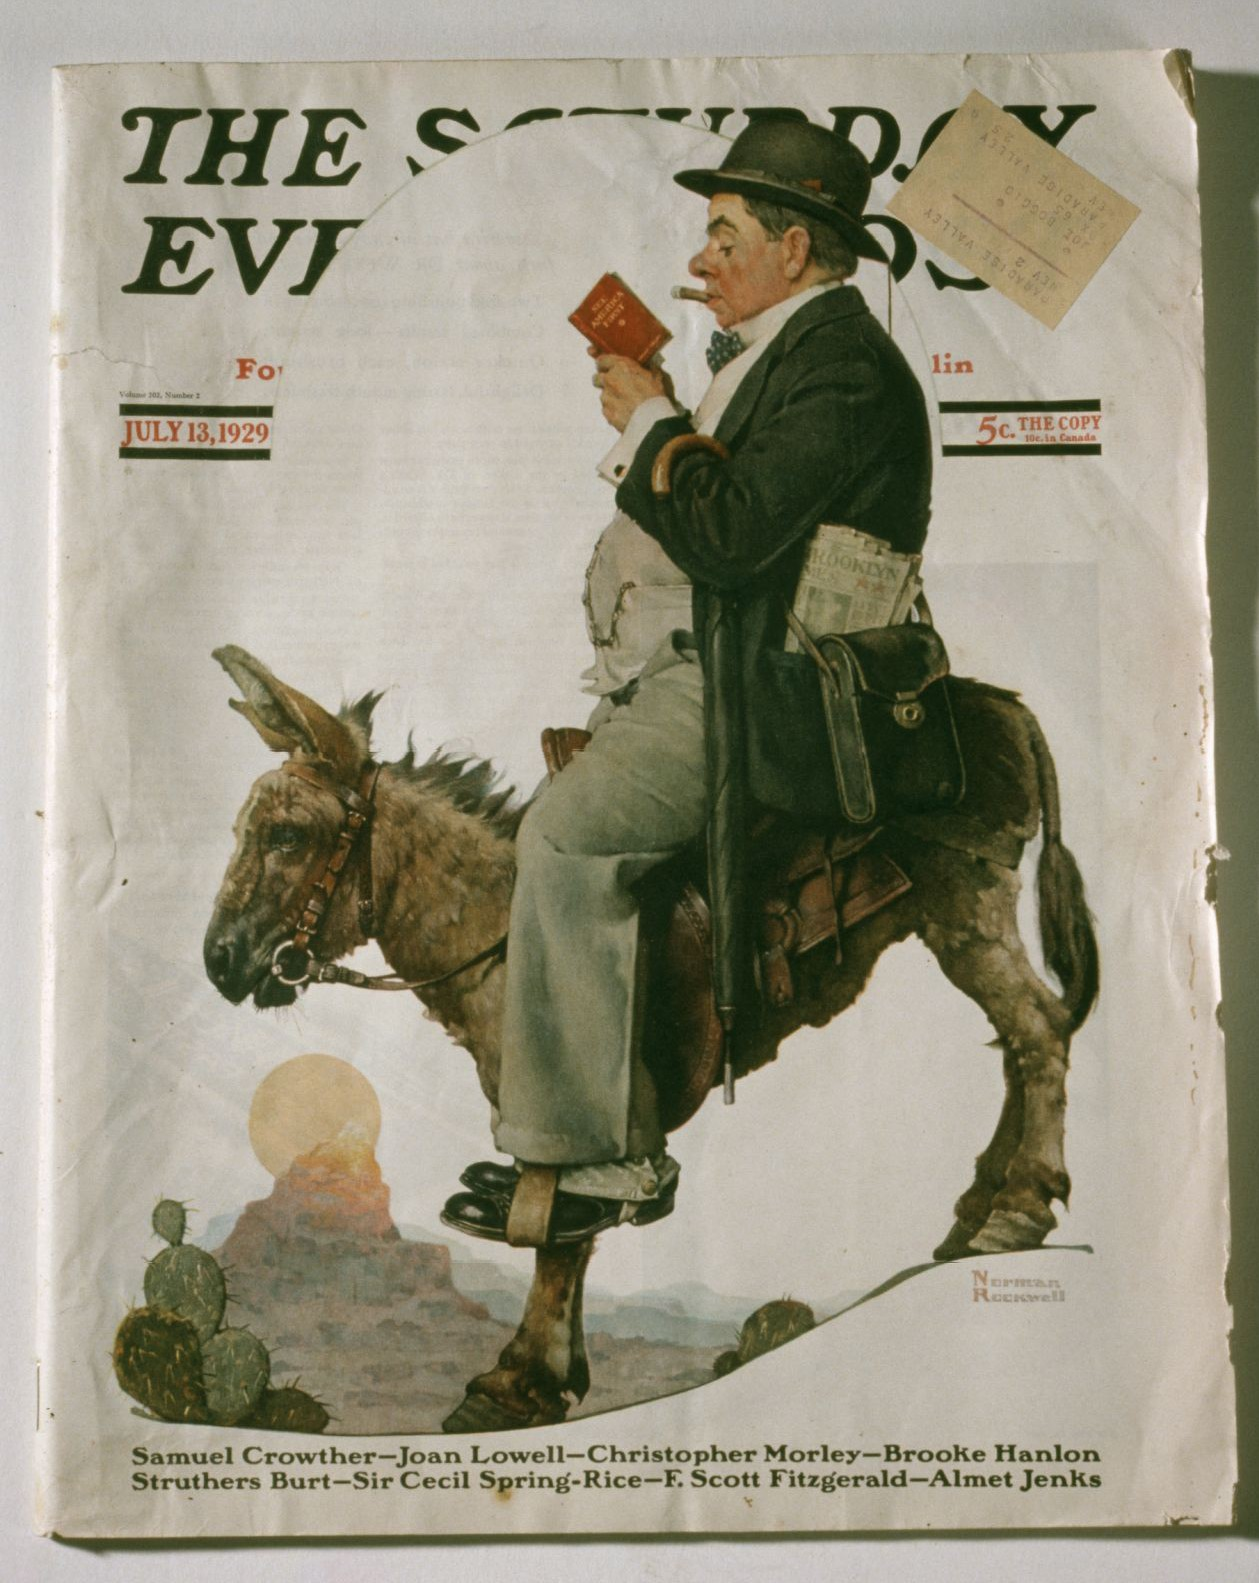 The Saturday Evening Post | February 2, 1929 at Wolfgangs